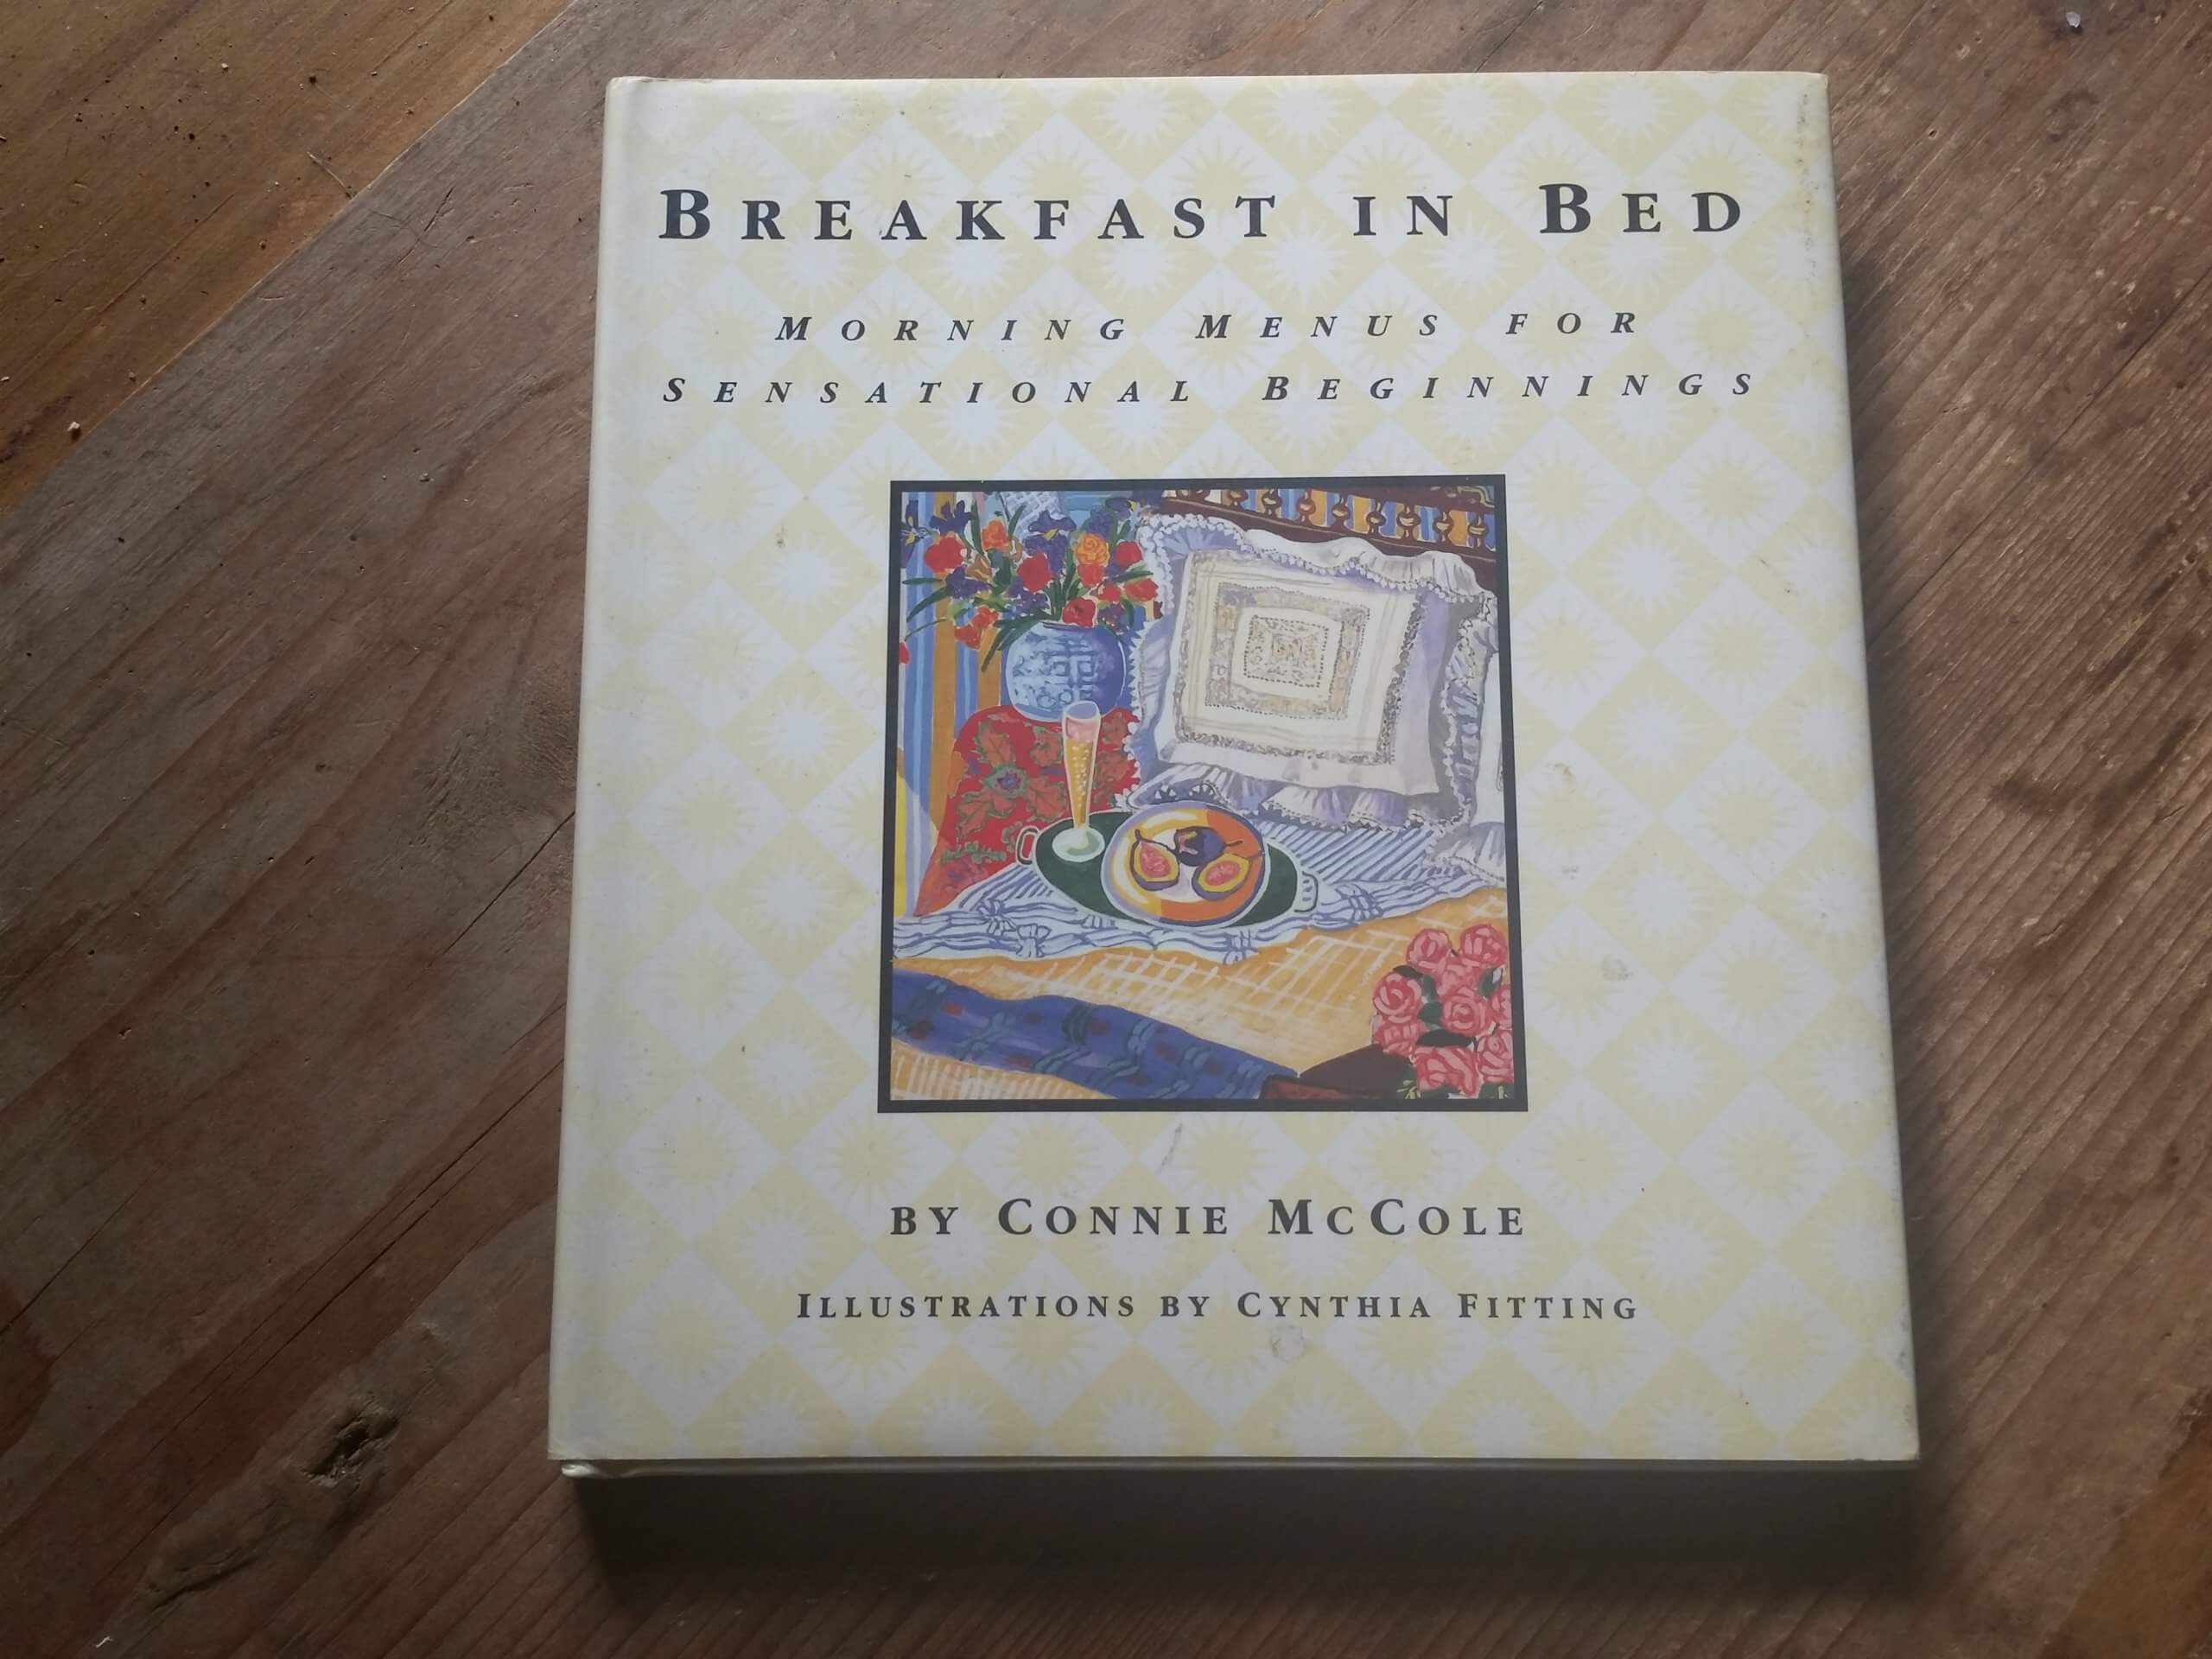 Breakfast in bed recipes from around the world at PumpjackPiddlewick